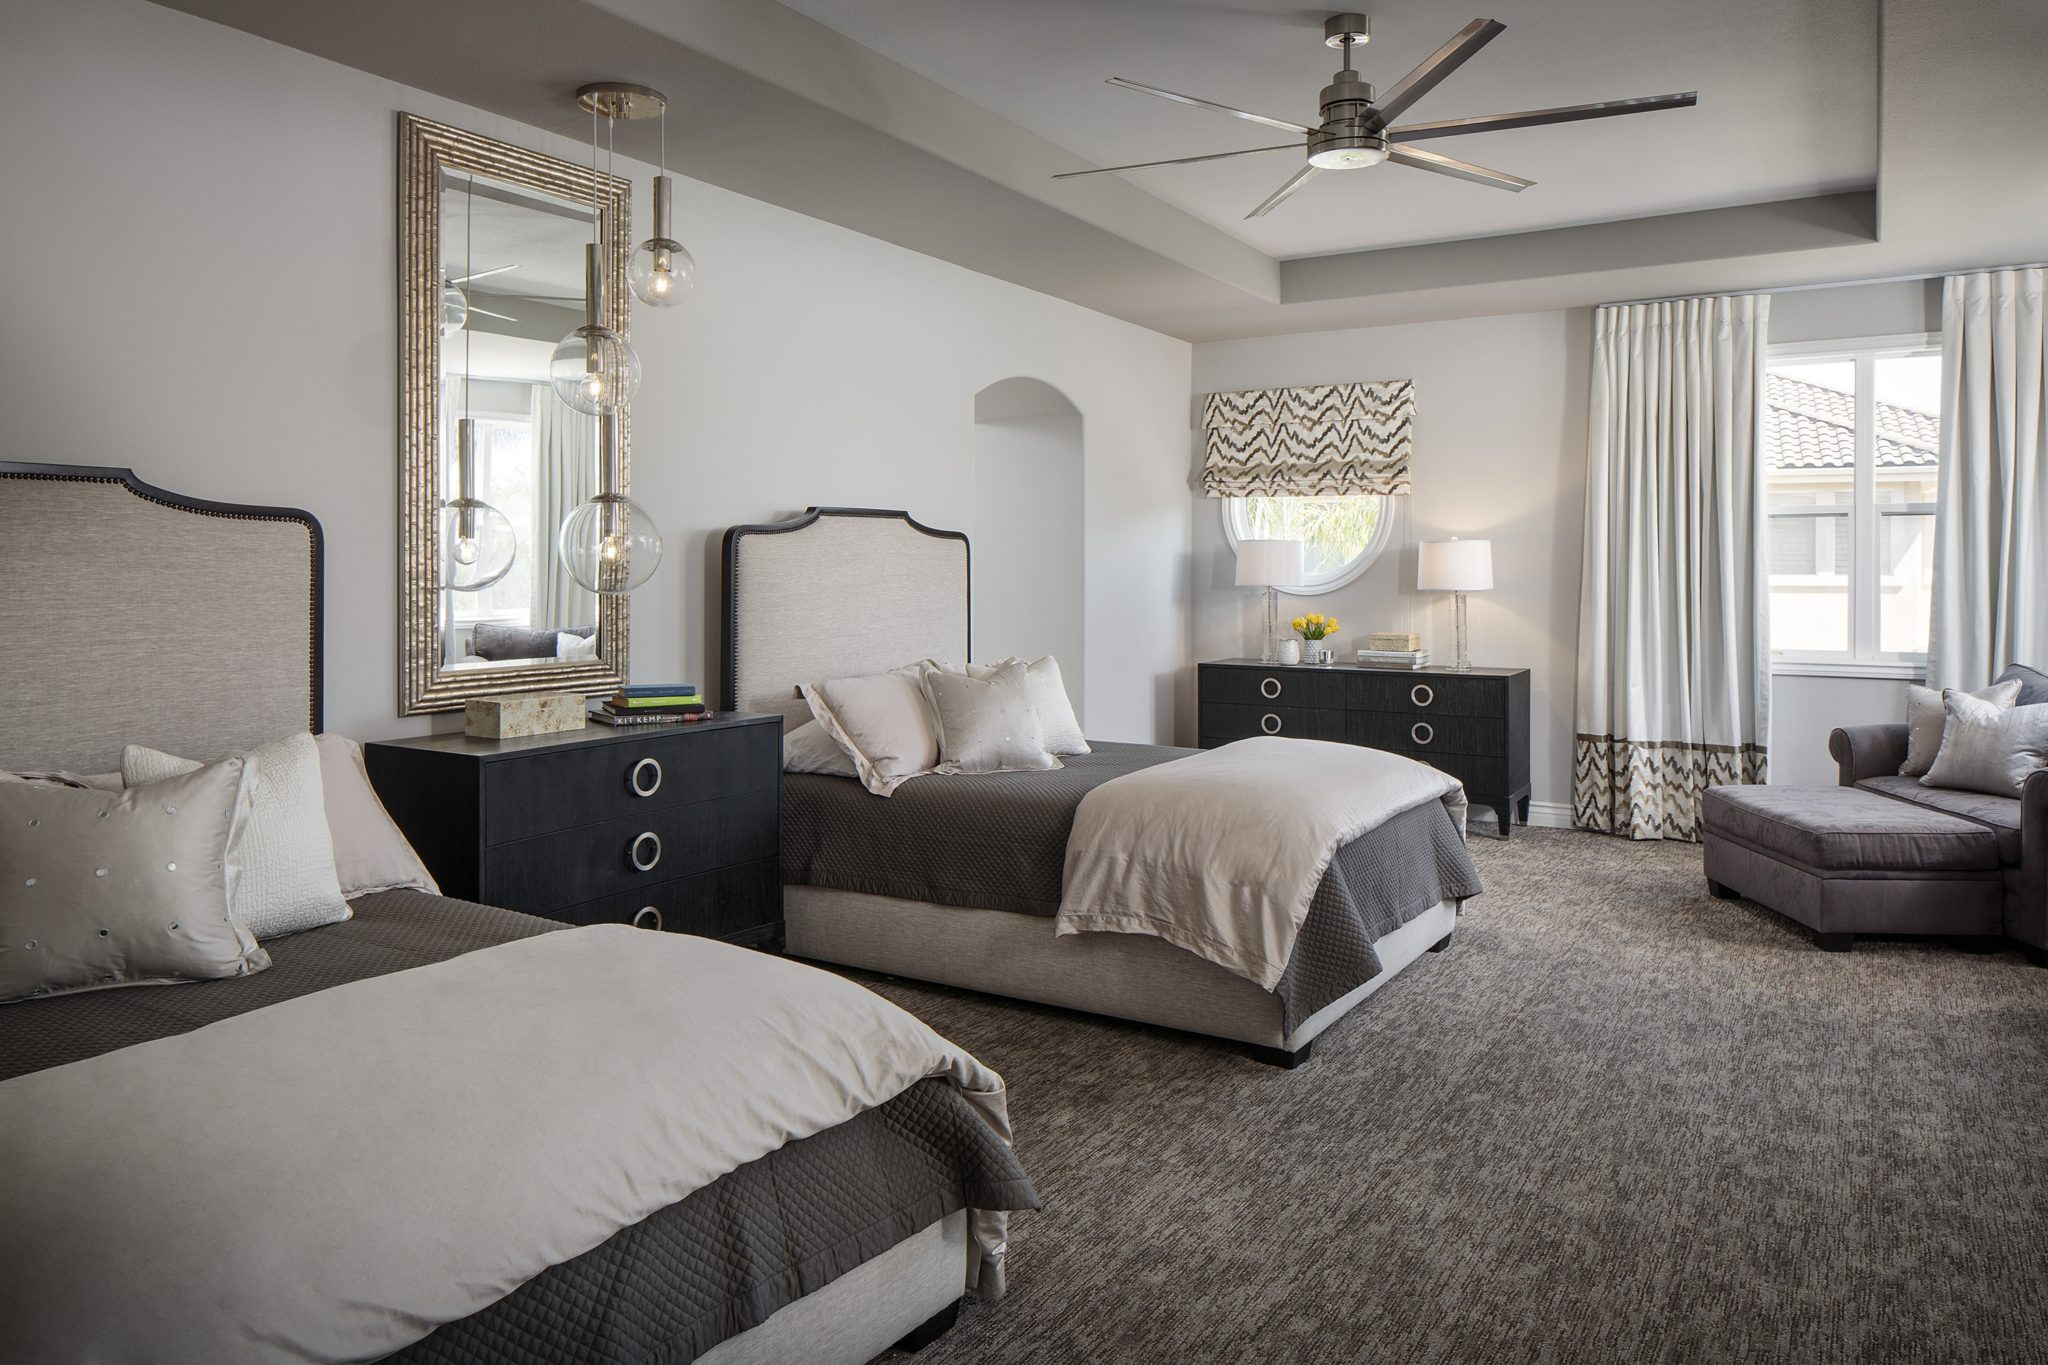 Master Bedroom Heaven w/ Brownstone Casegoods & Donghia Fabrics = Sanctuary by SUZA DESIGN